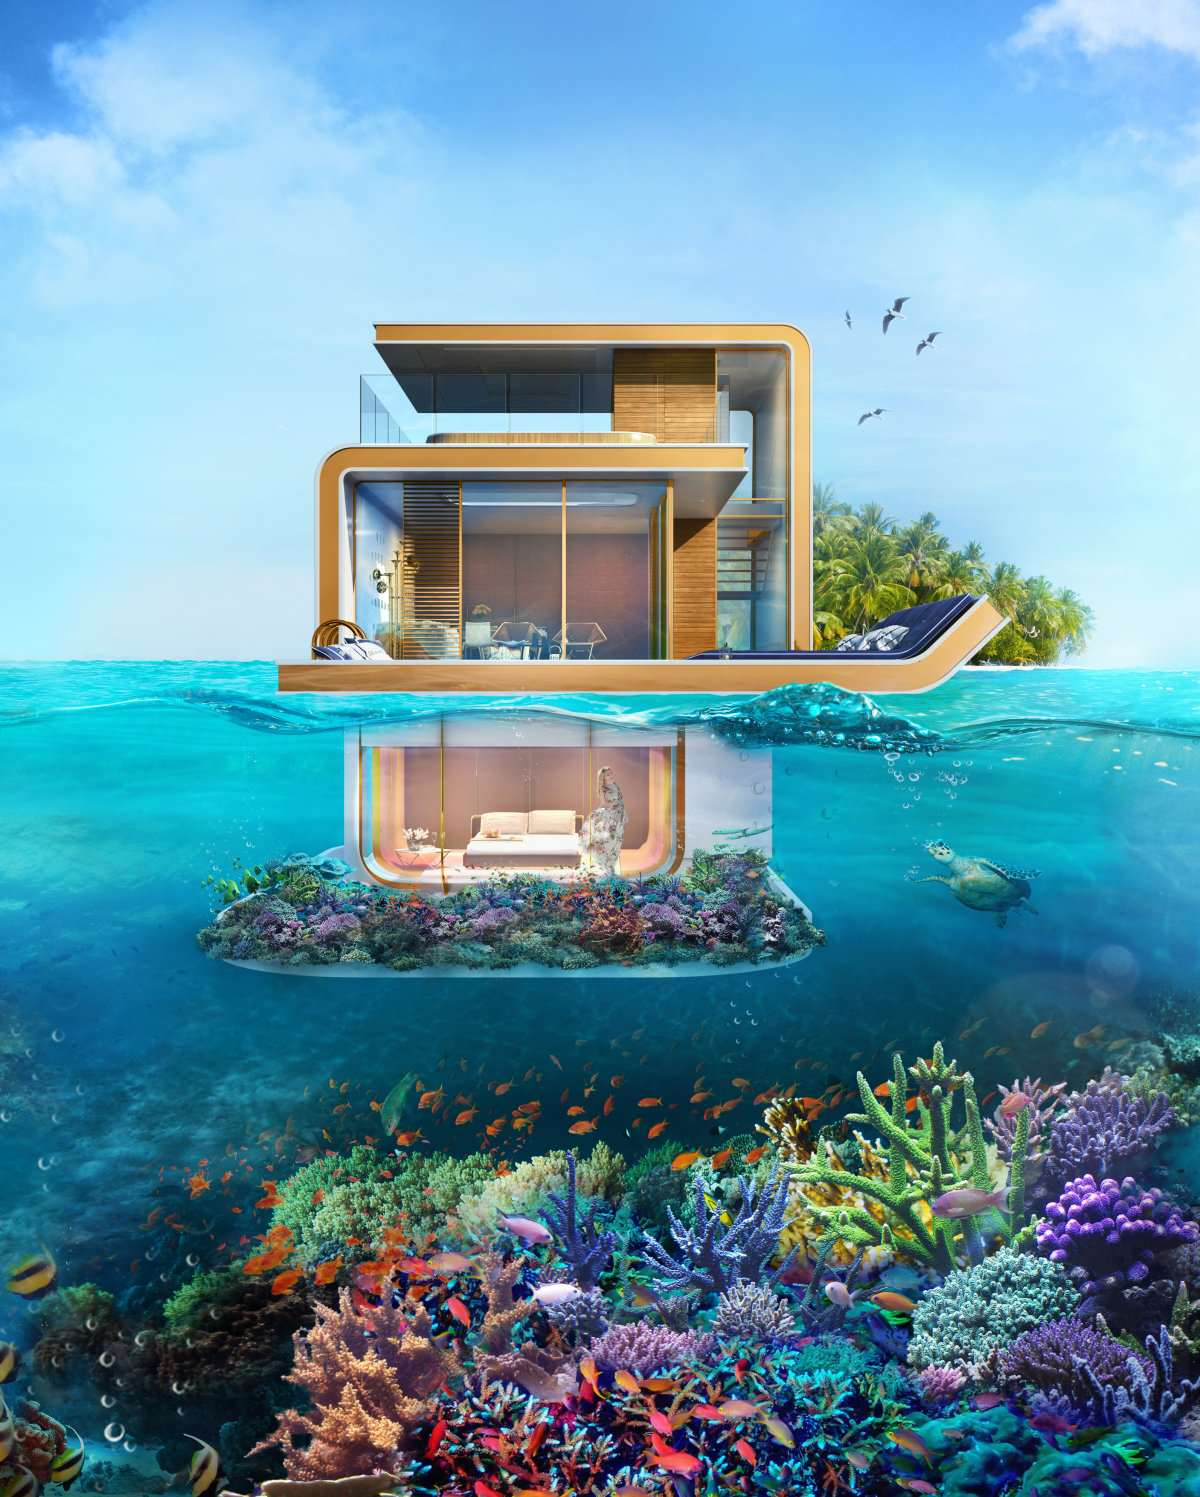 These Underwater Houses Are Absolutely Ridiculous seahorse4